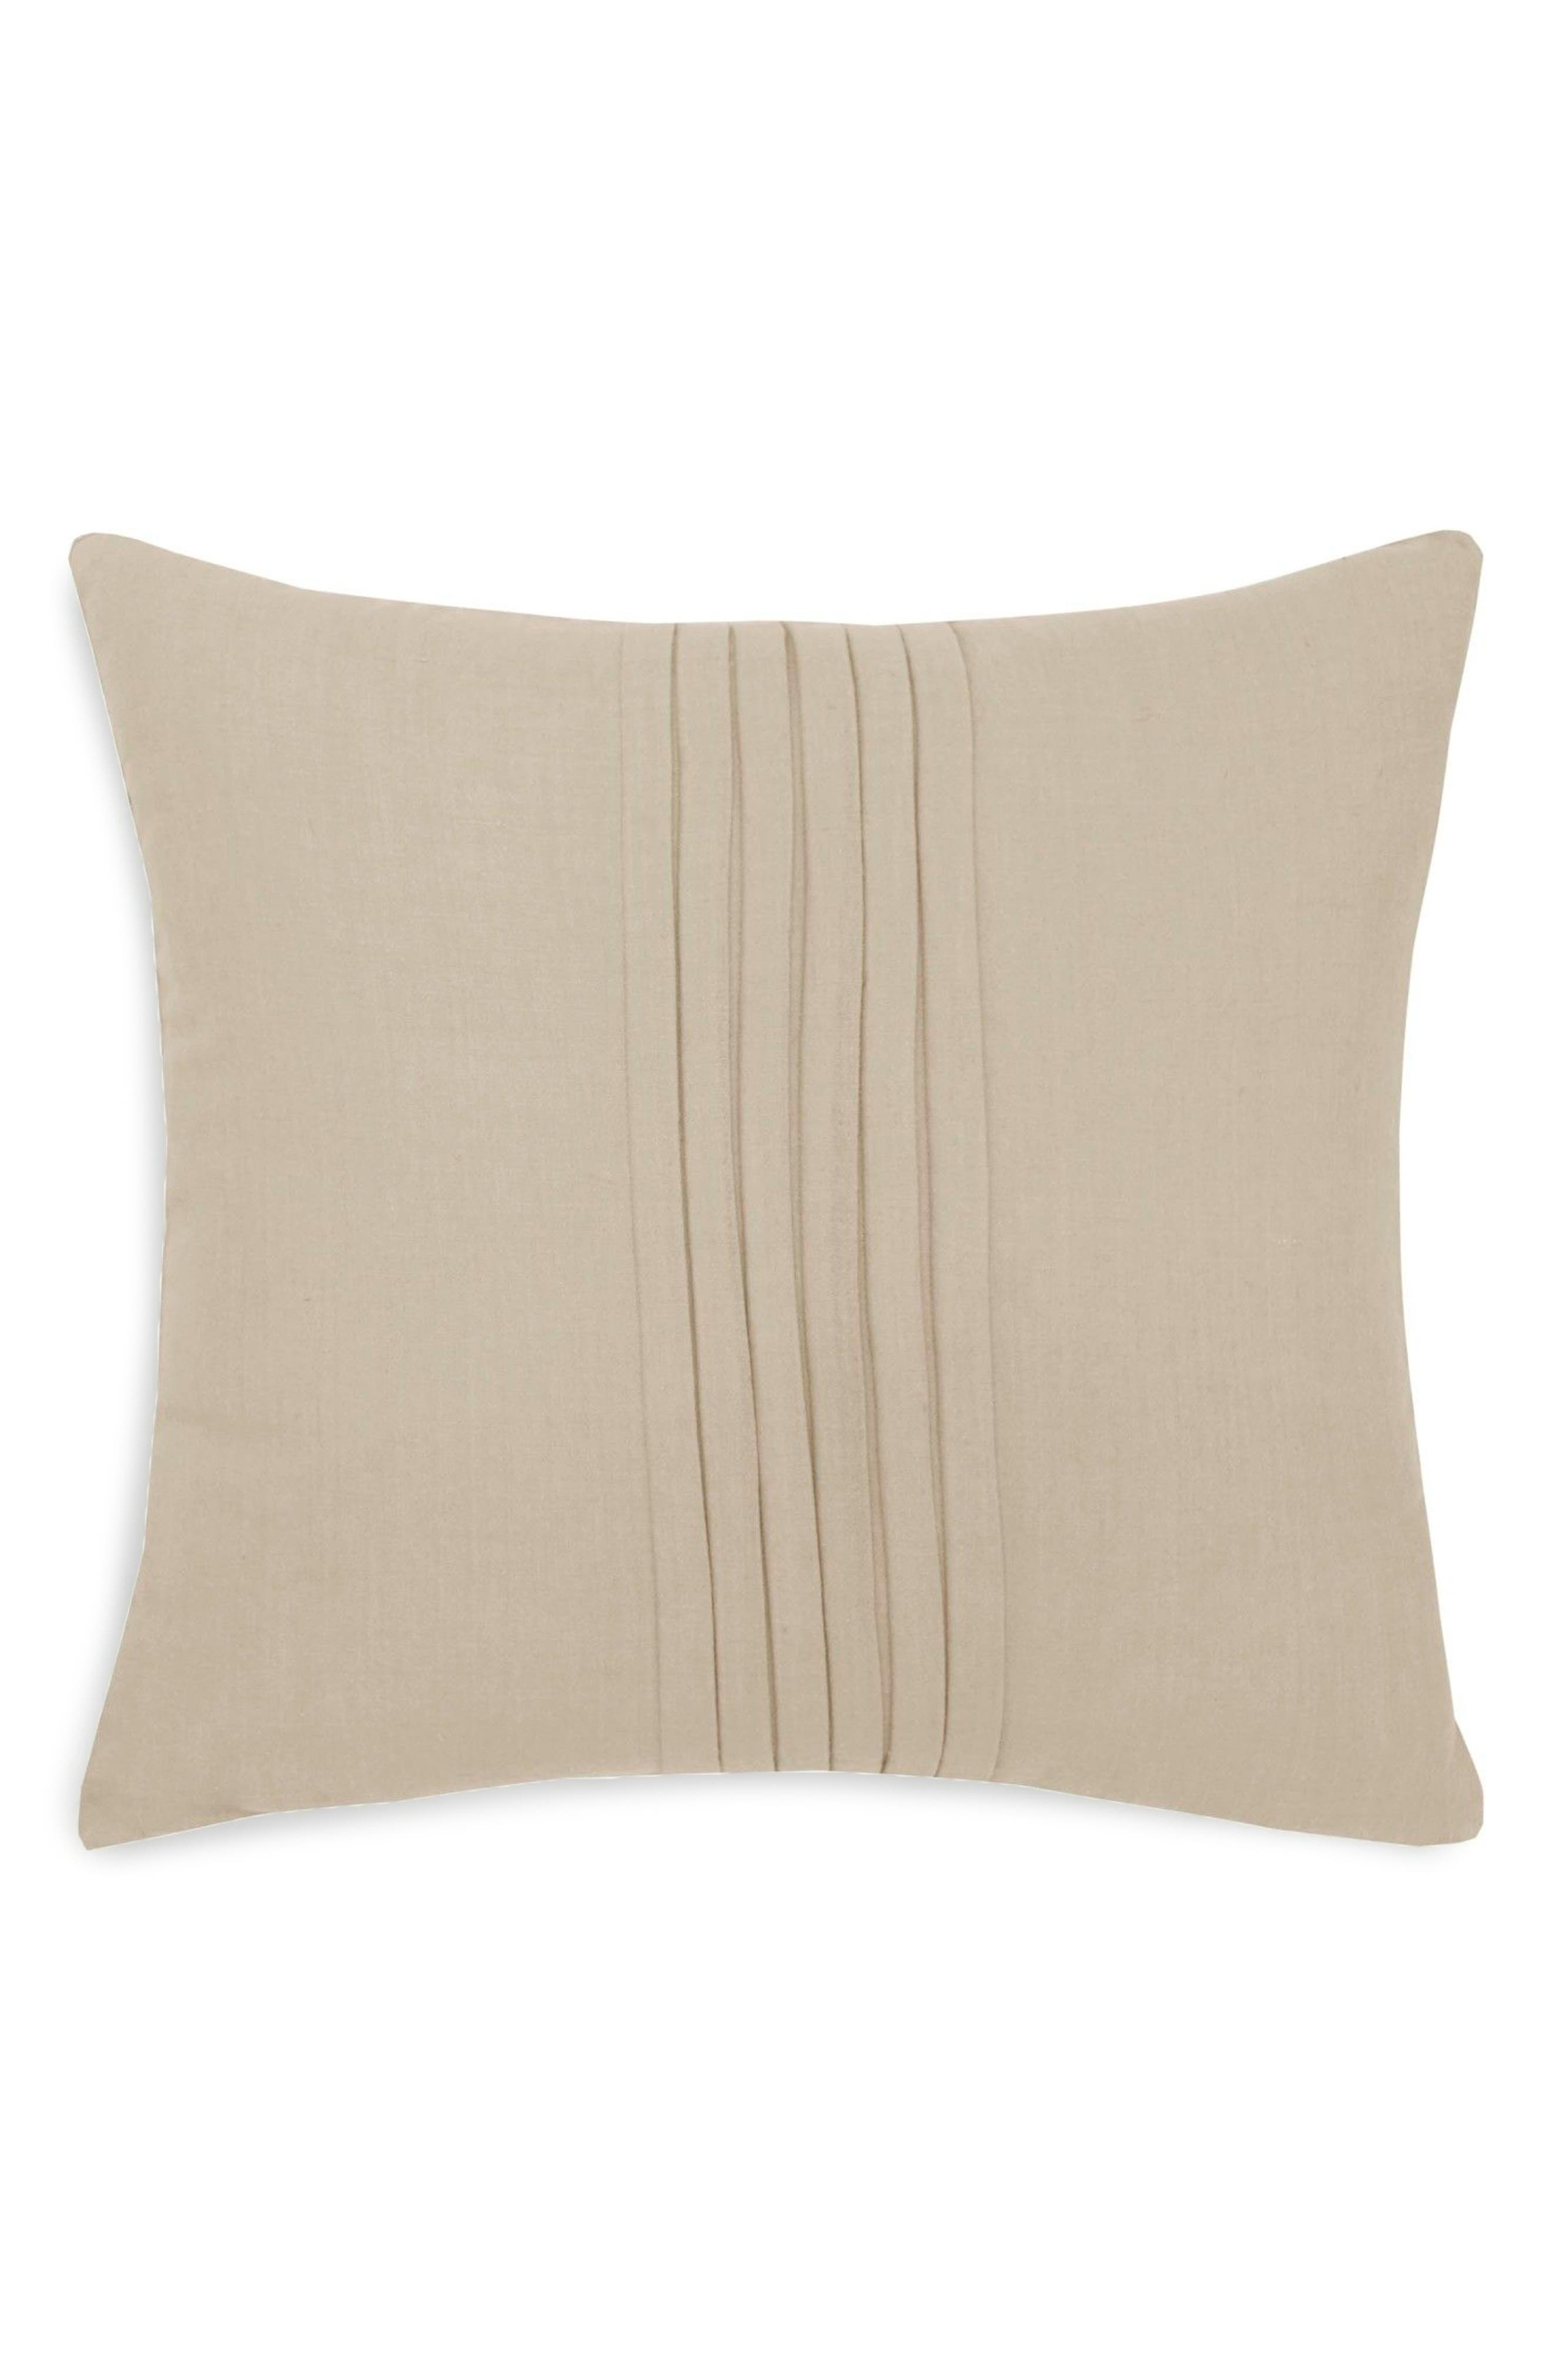 Seabrook Pleated Pillow,                         Main,                         color, 289